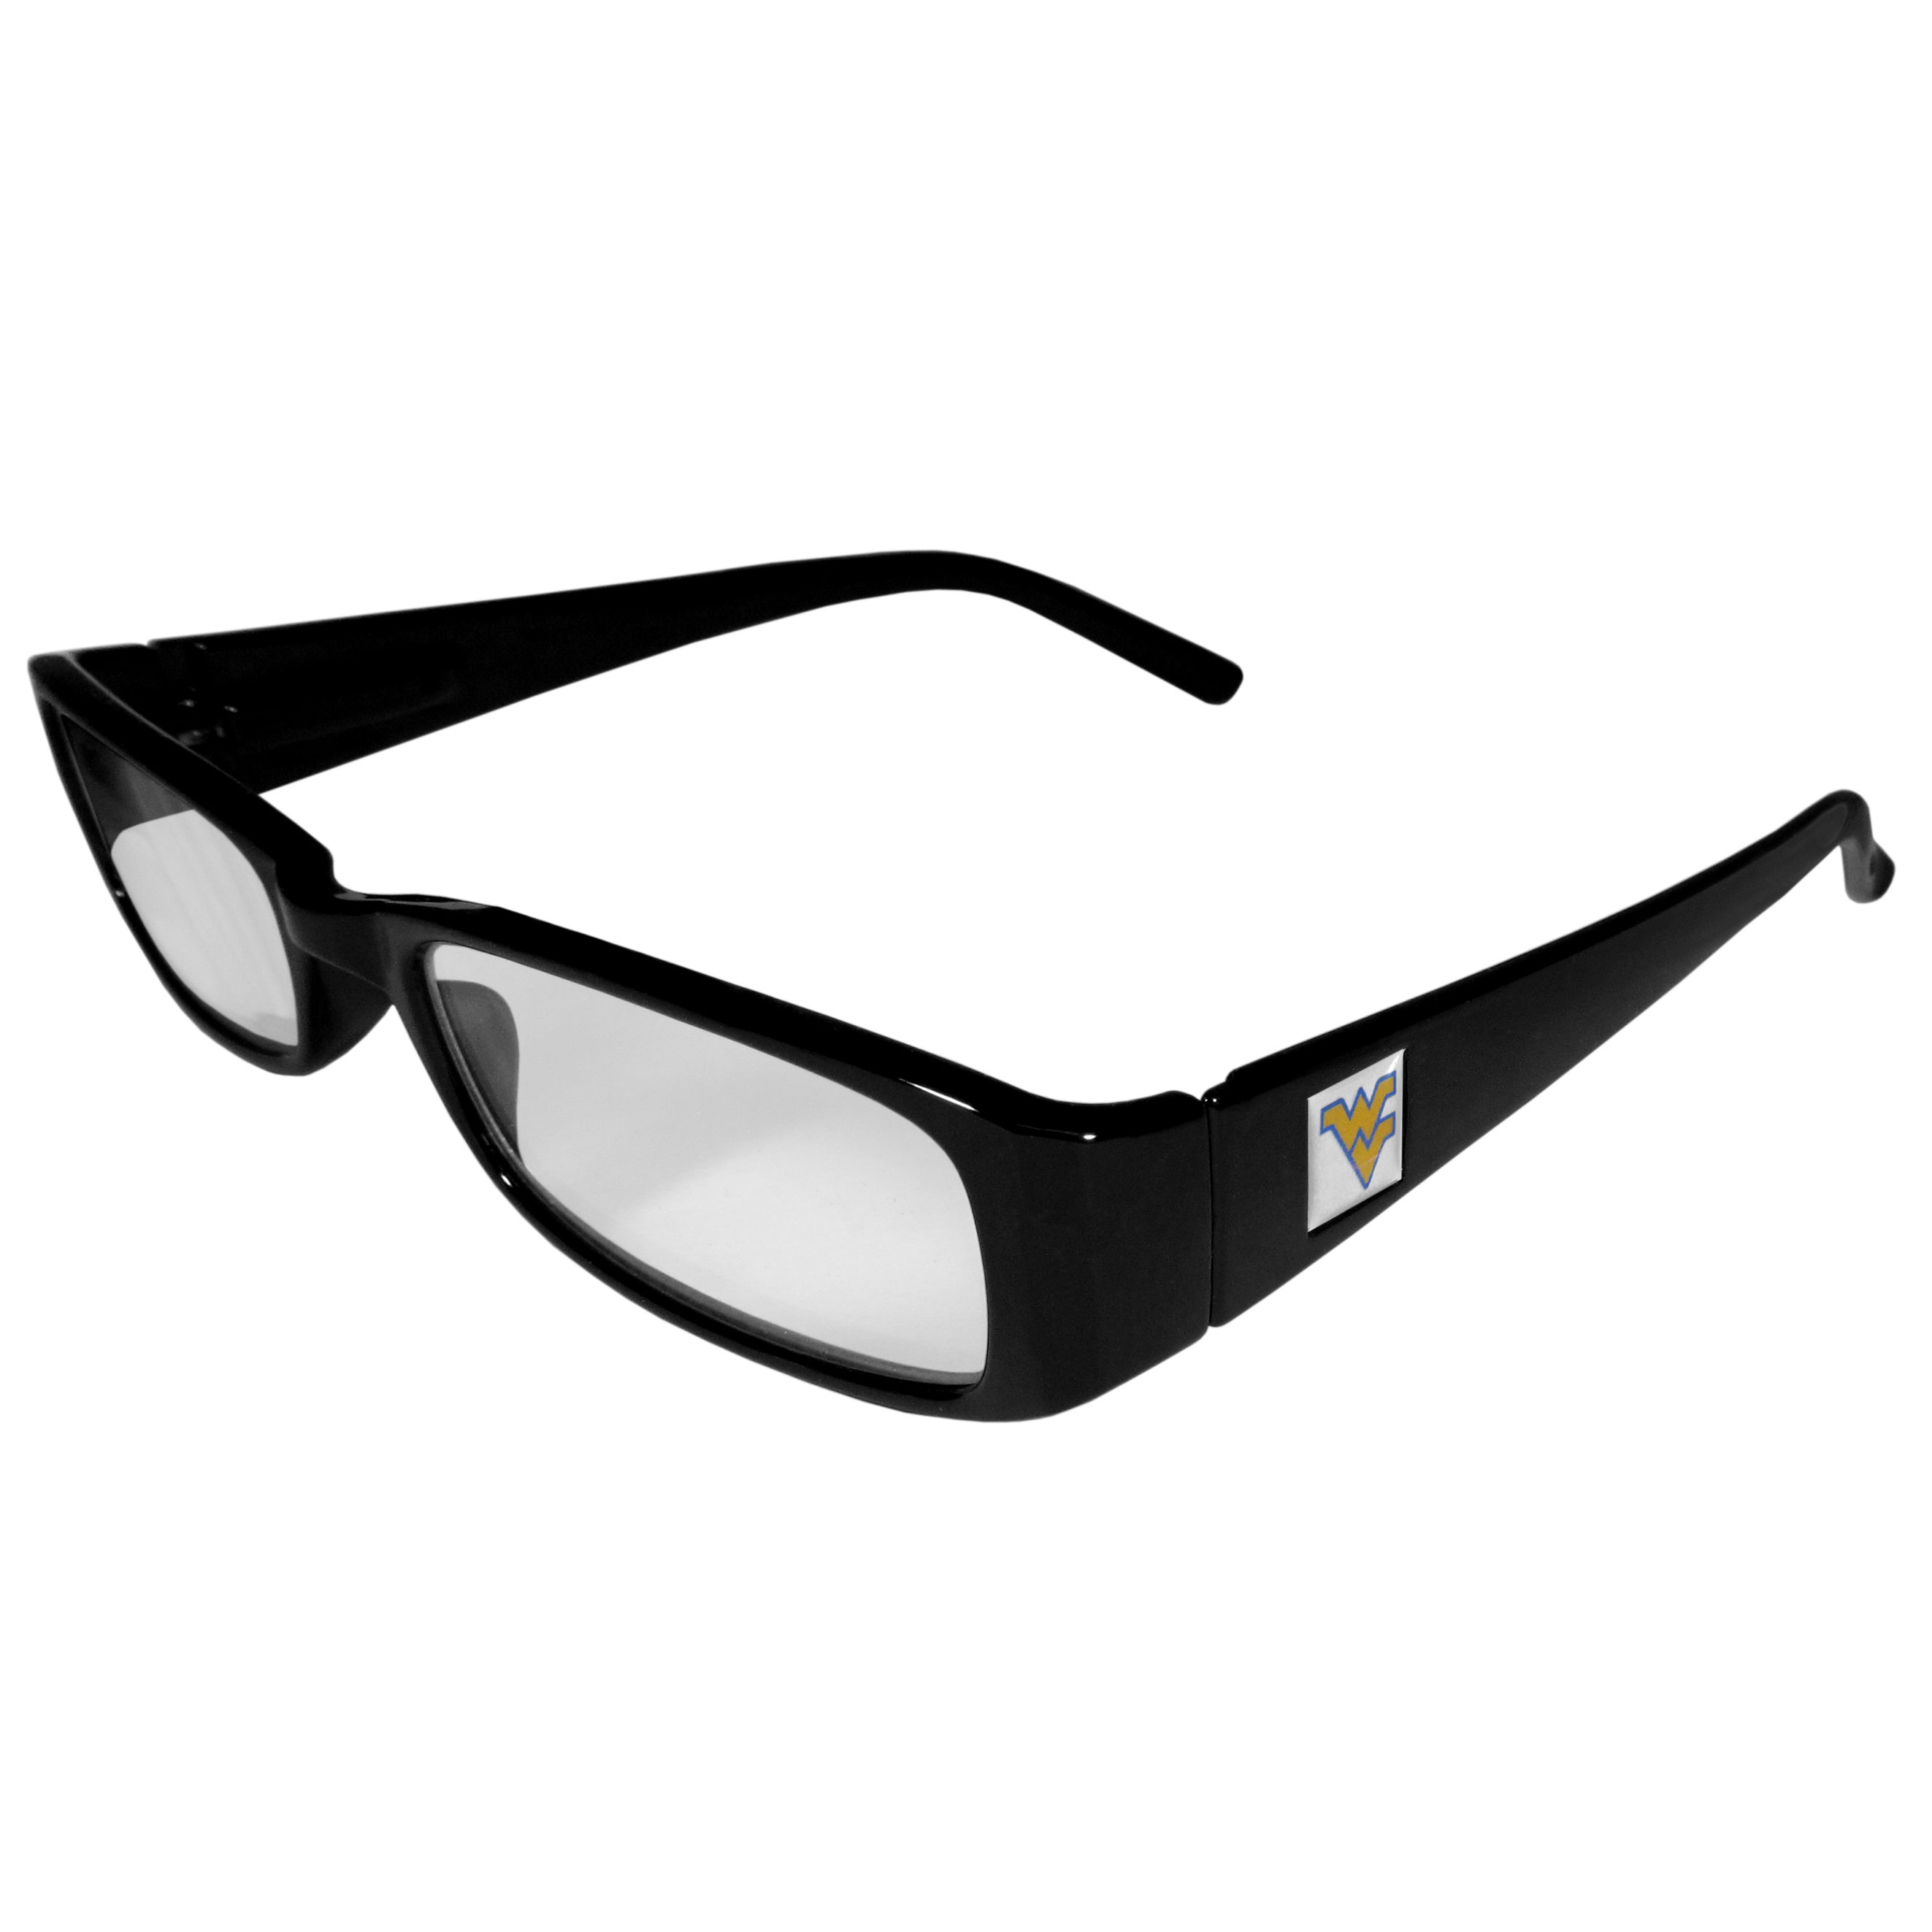 W. Virginia Mountaineers Black Reading Glasses +1.25 - Our W. Virginia Mountaineers reading glasses are 5.25 inches wide and feature the team logo on each arm. Magnification Power 1.25